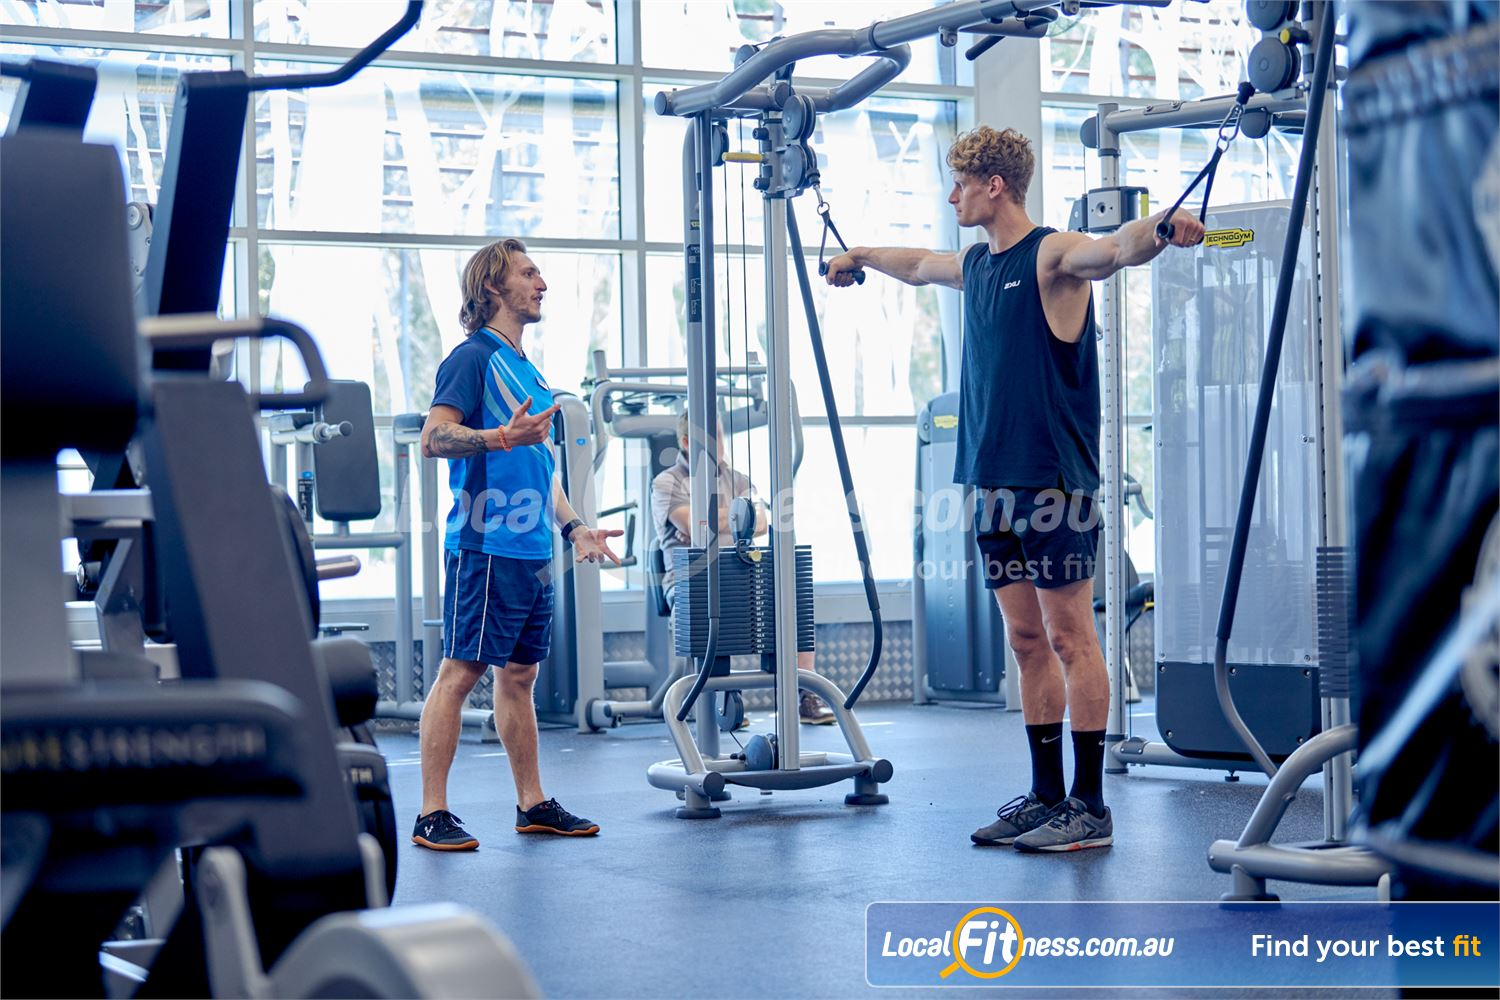 Eltham Leisure Centre Near Research Our Eltham personal training team can help you with your strength training.